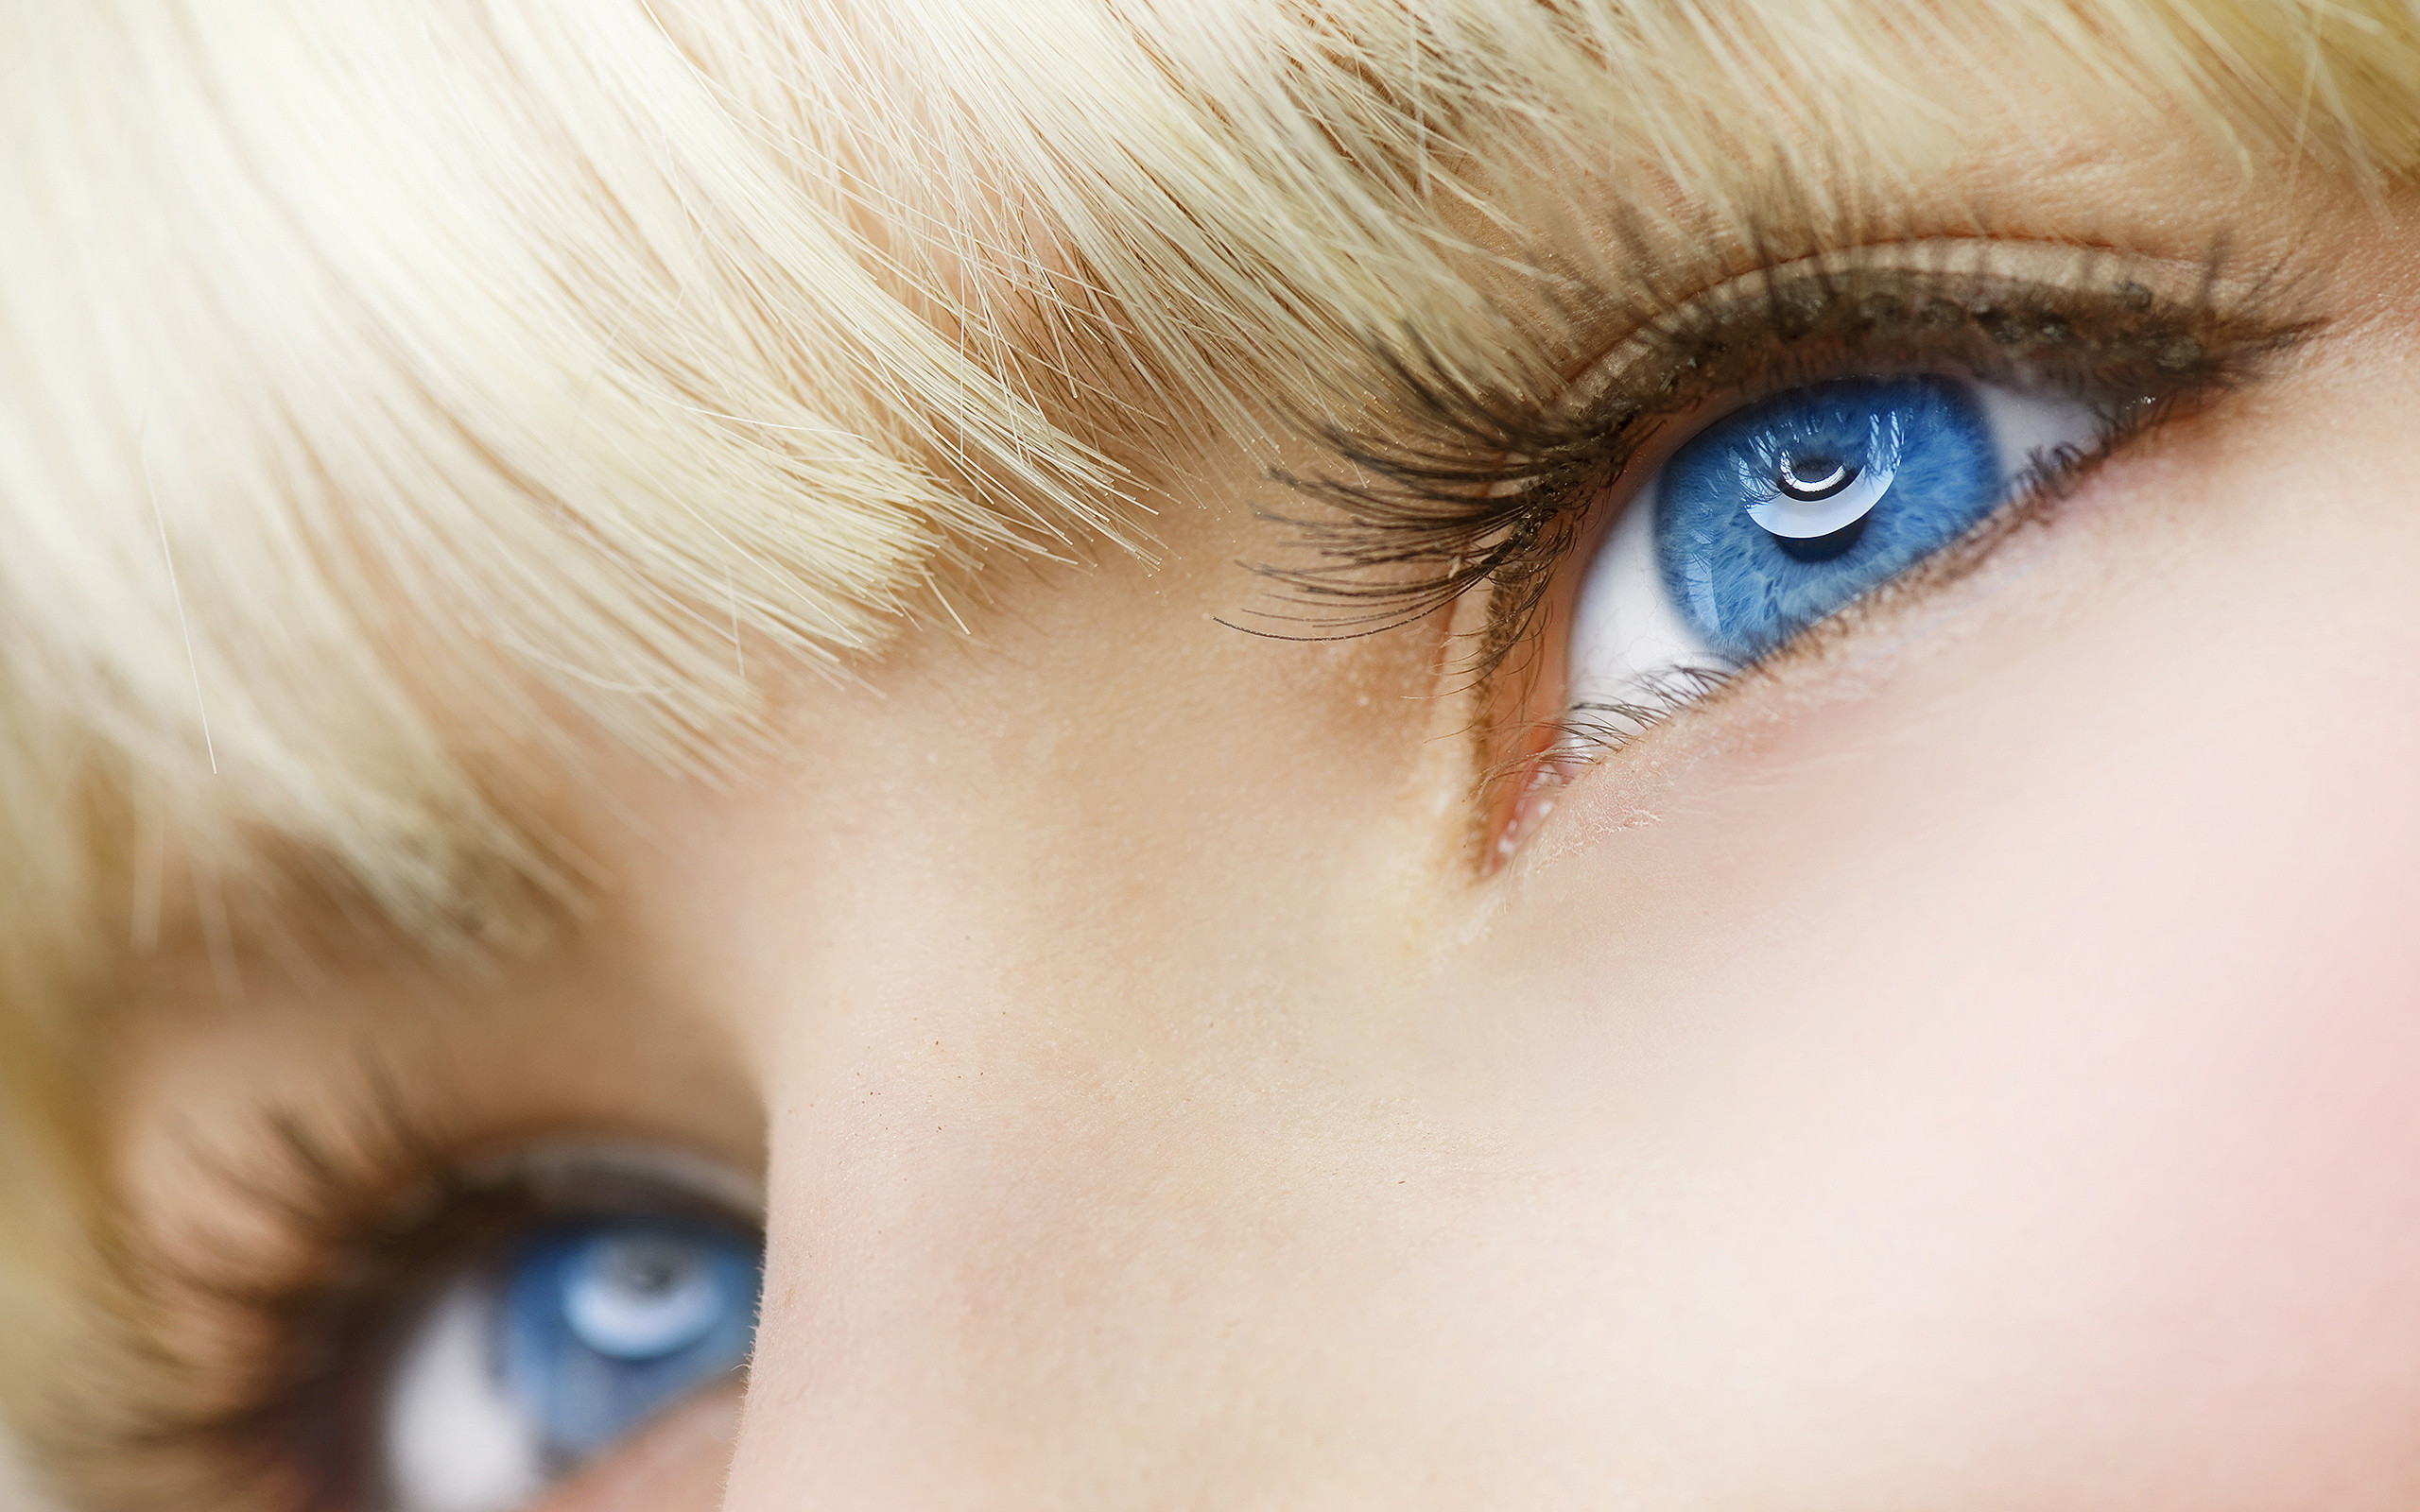 2560x1600 44 Beautiful Eyes Photography Incredible Snaps - HD Wallpapers · Download · In Asia ...